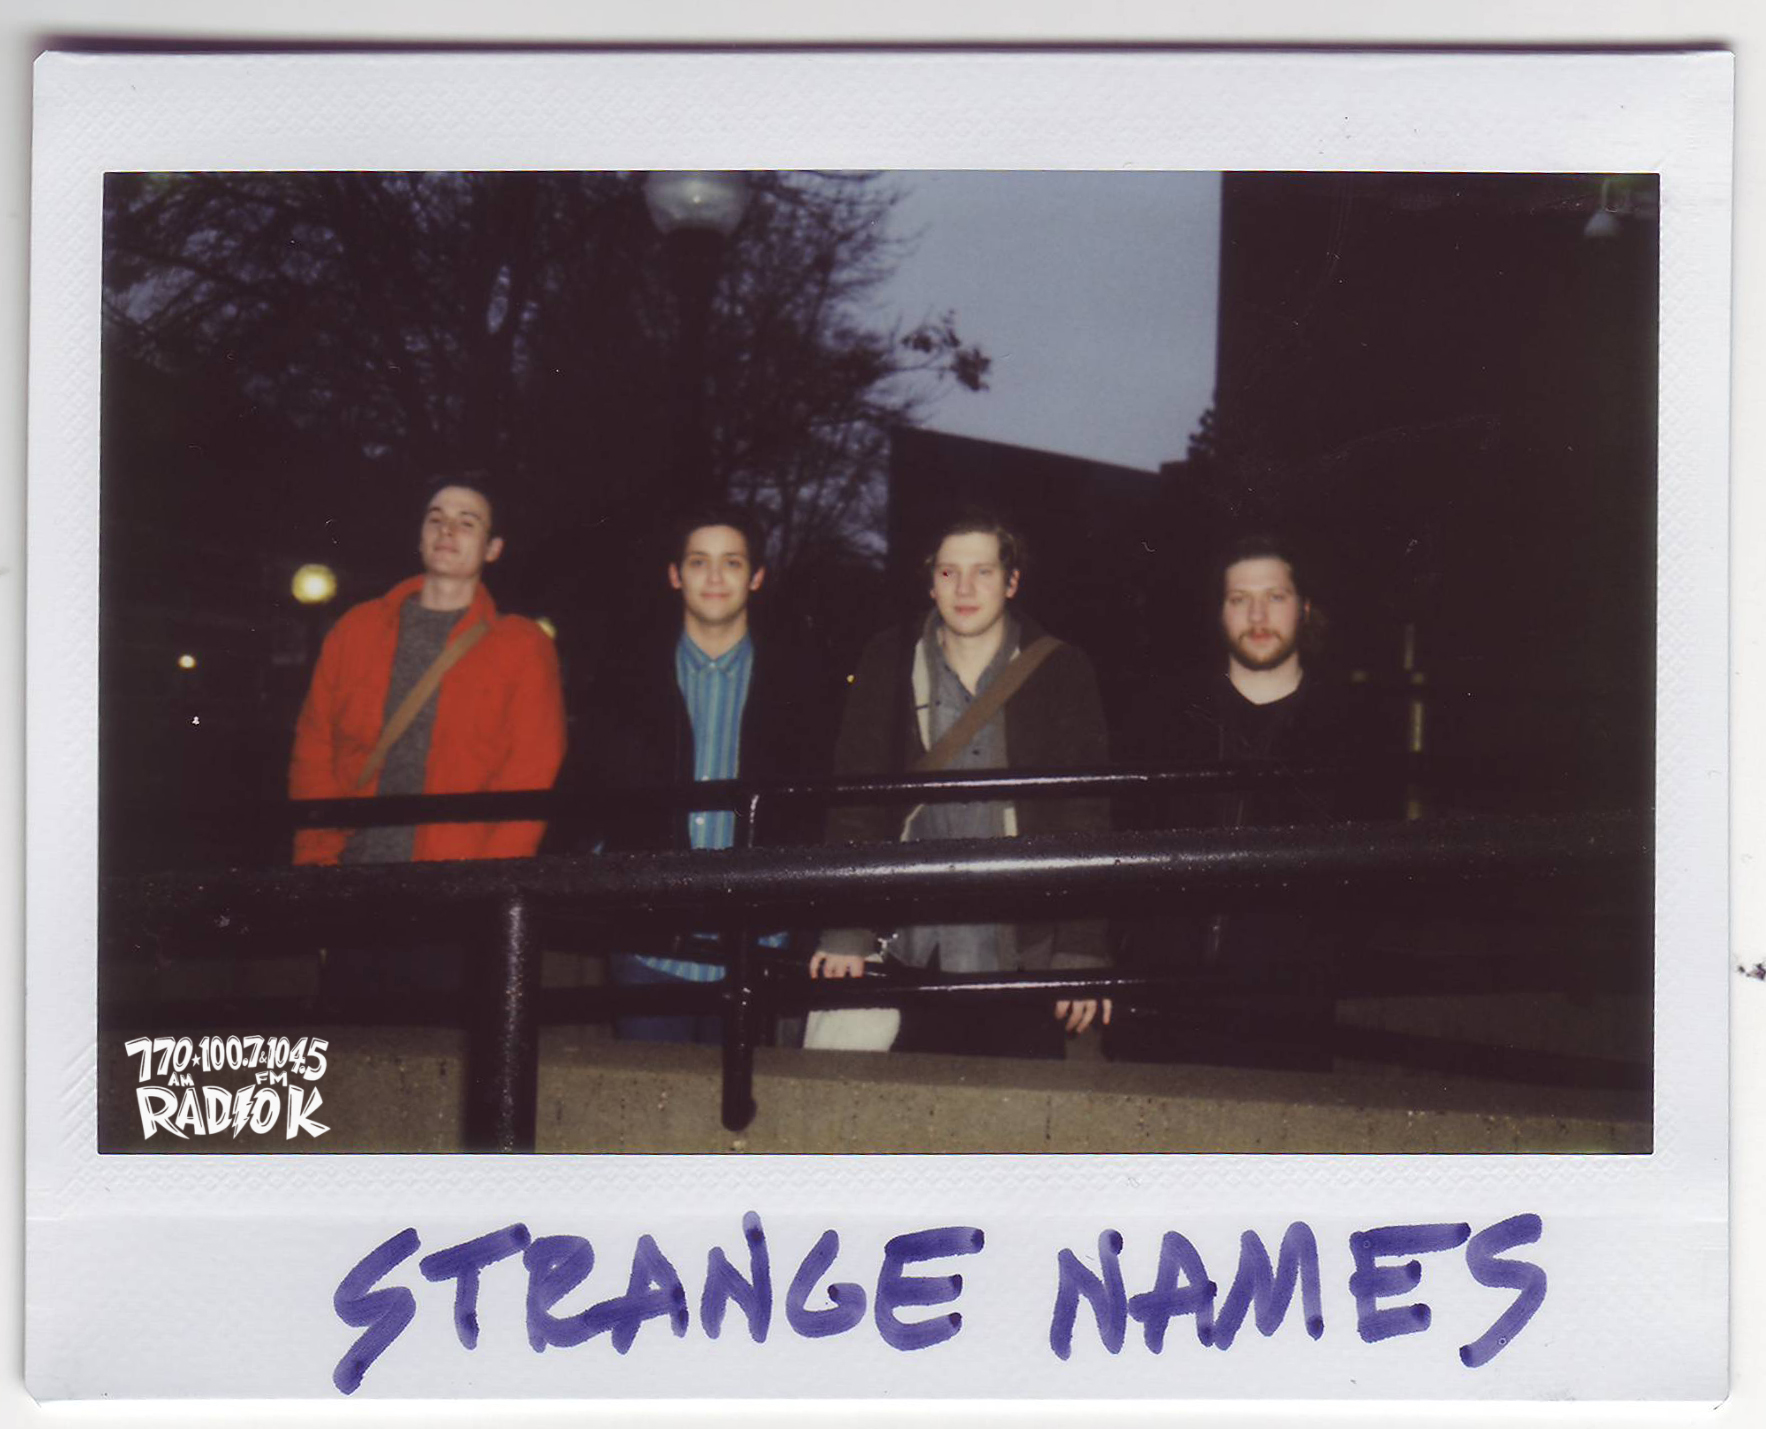 Strange Names Radio K In-studio Polaroid